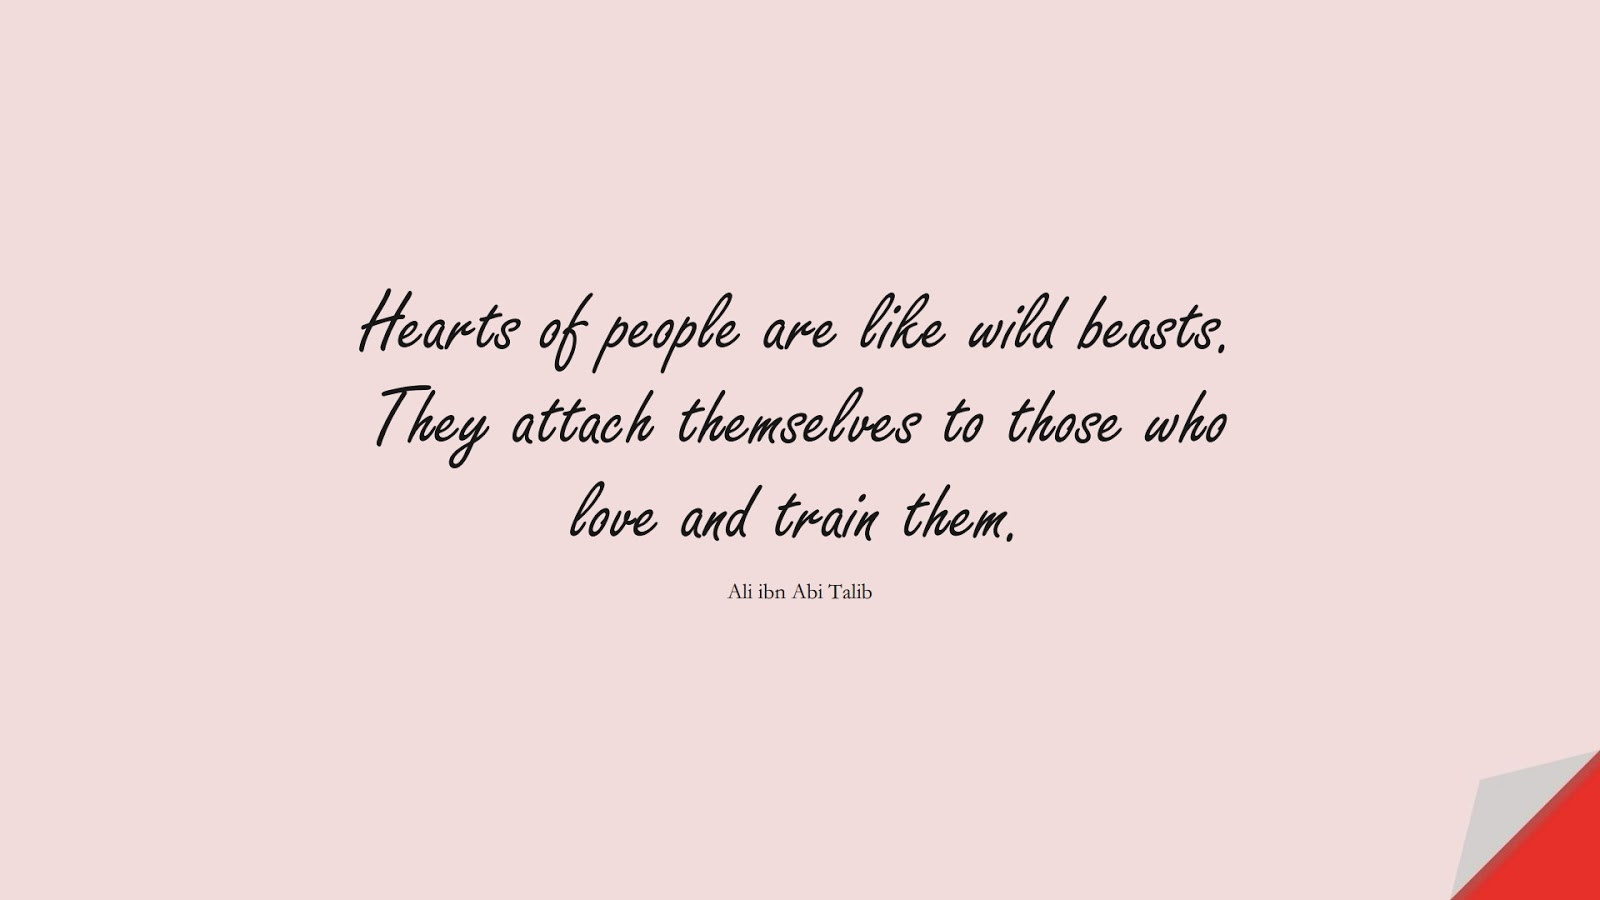 Hearts of people are like wild beasts. They attach themselves to those who love and train them. (Ali ibn Abi Talib);  #AliQuotes